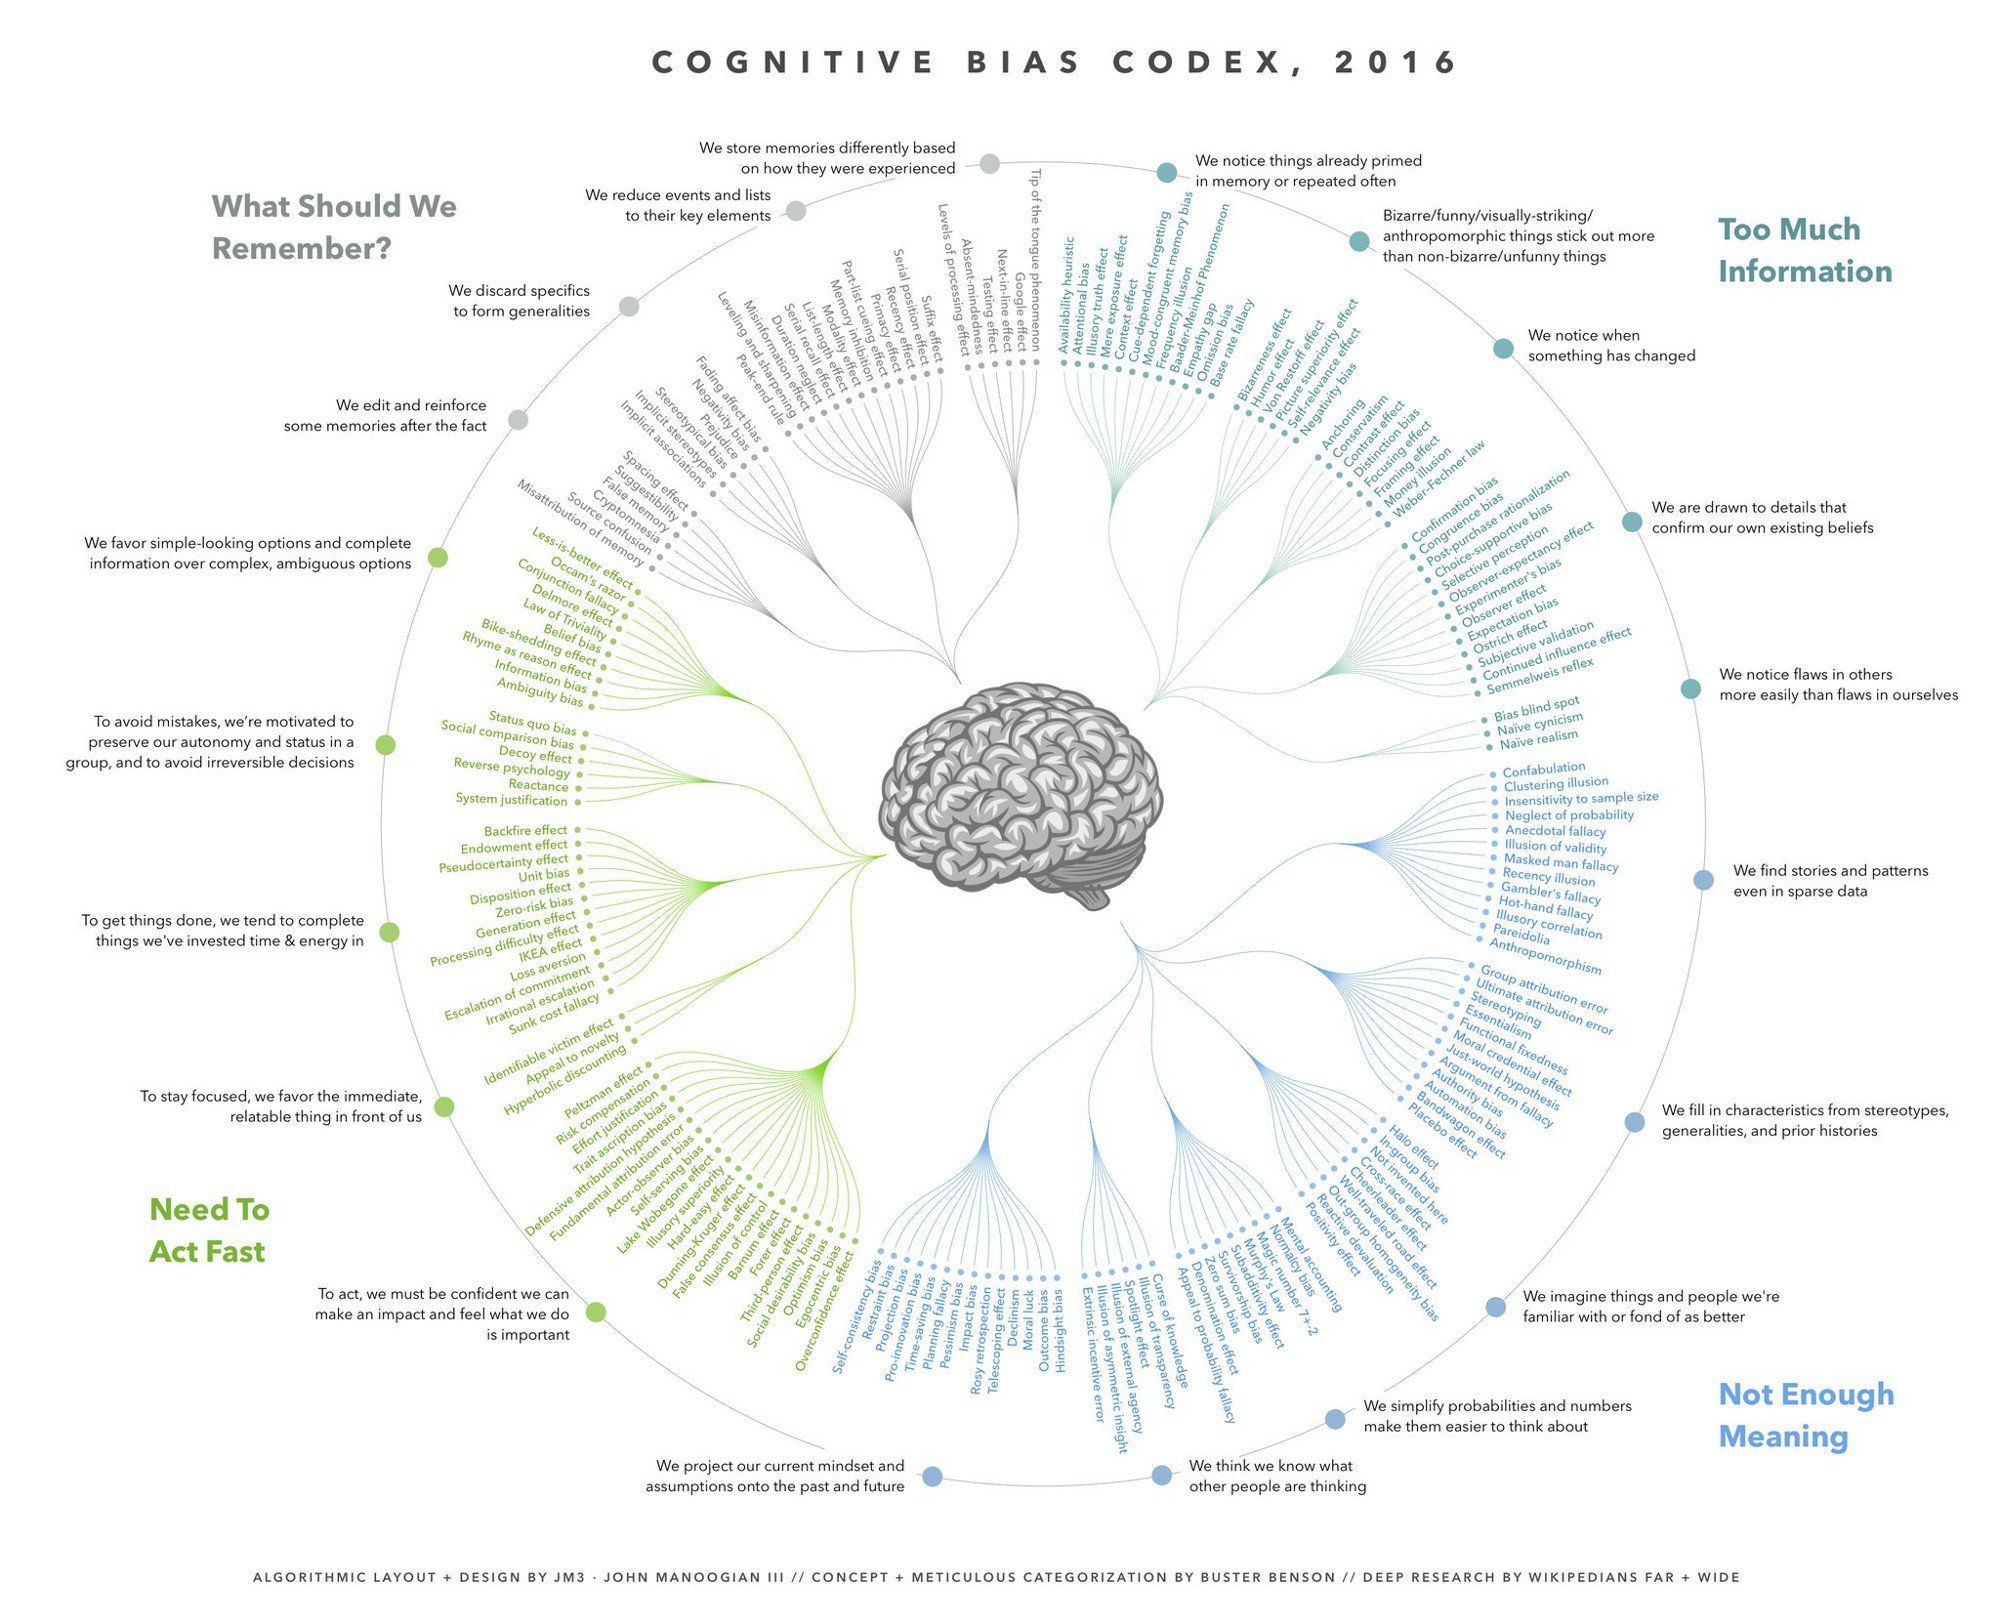 Cognitive Bias Codex, 2016  Algorithmic Layout  Design by JM3 . John Manoogian Concept + Meticulous Categorization by Buster Benson Deep Researchby Wikipedians far + wide